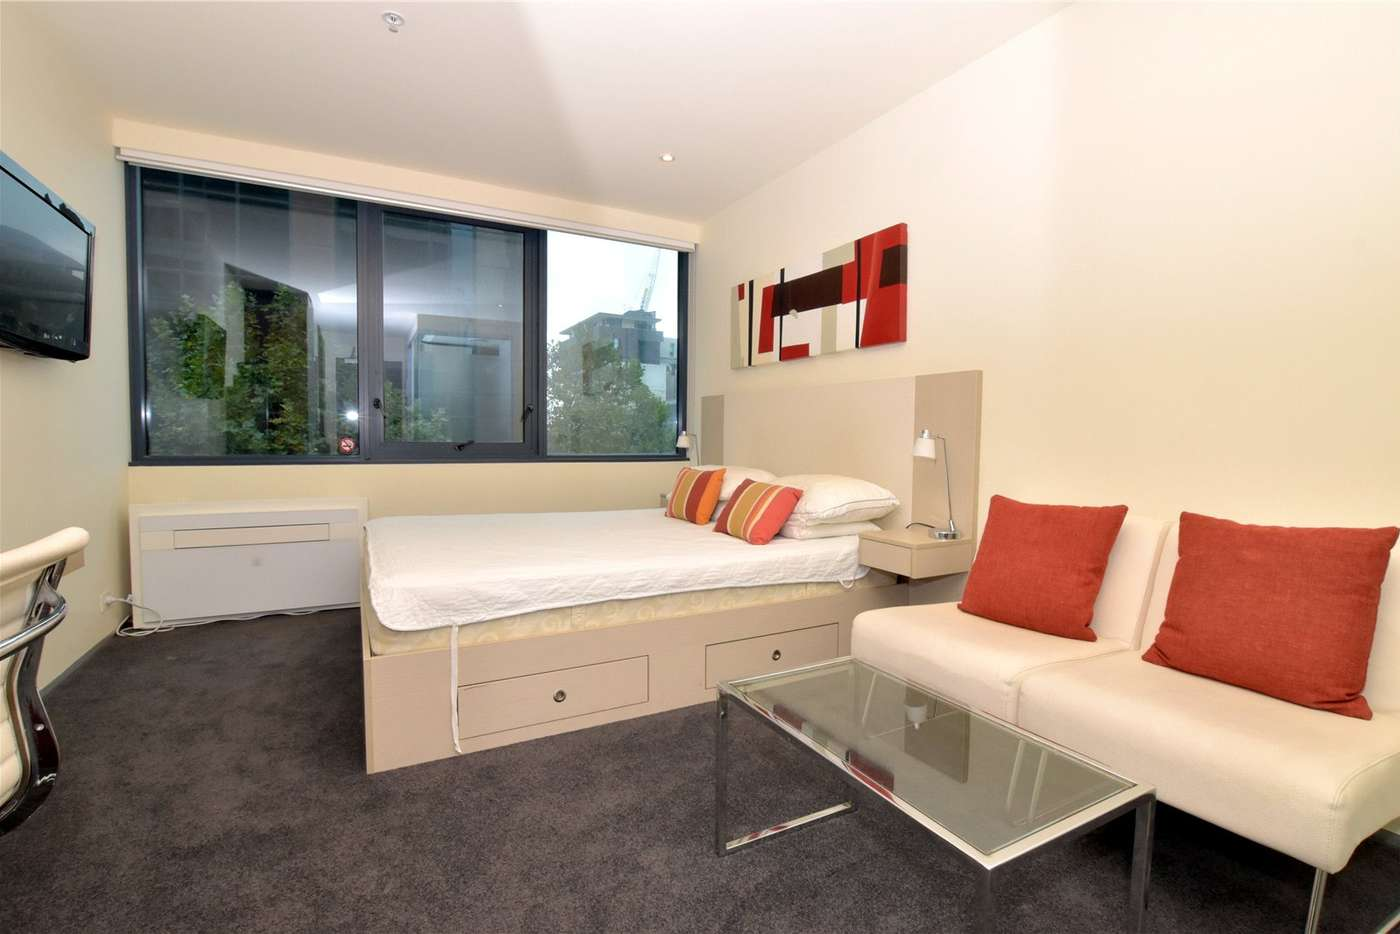 Main view of Homely studio listing, 305/181 ABeckett Street, Melbourne VIC 3000